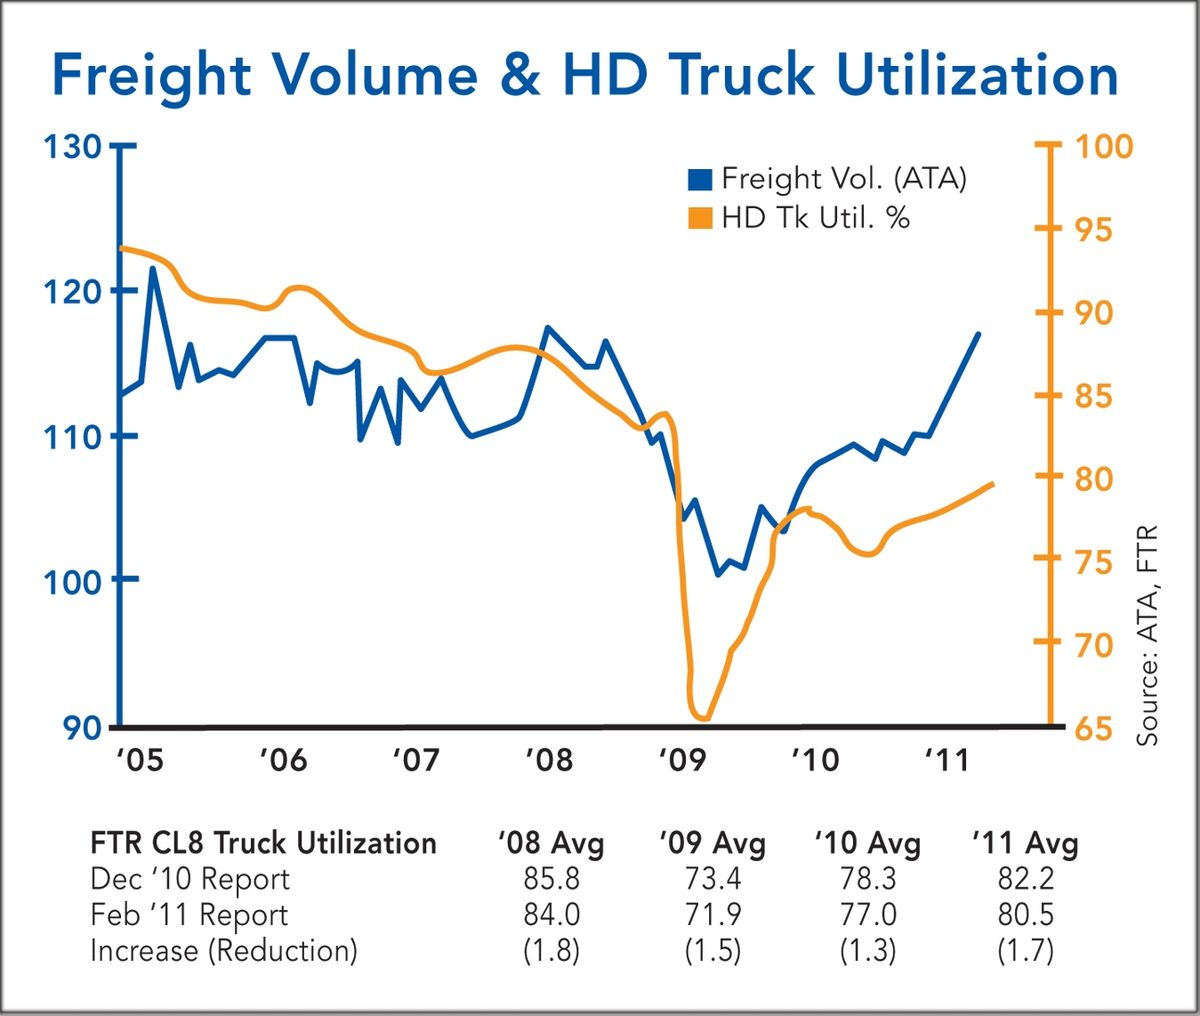 Fuel Costs, Regulatory Impacts and Economy Create Concern for Truck Capacity